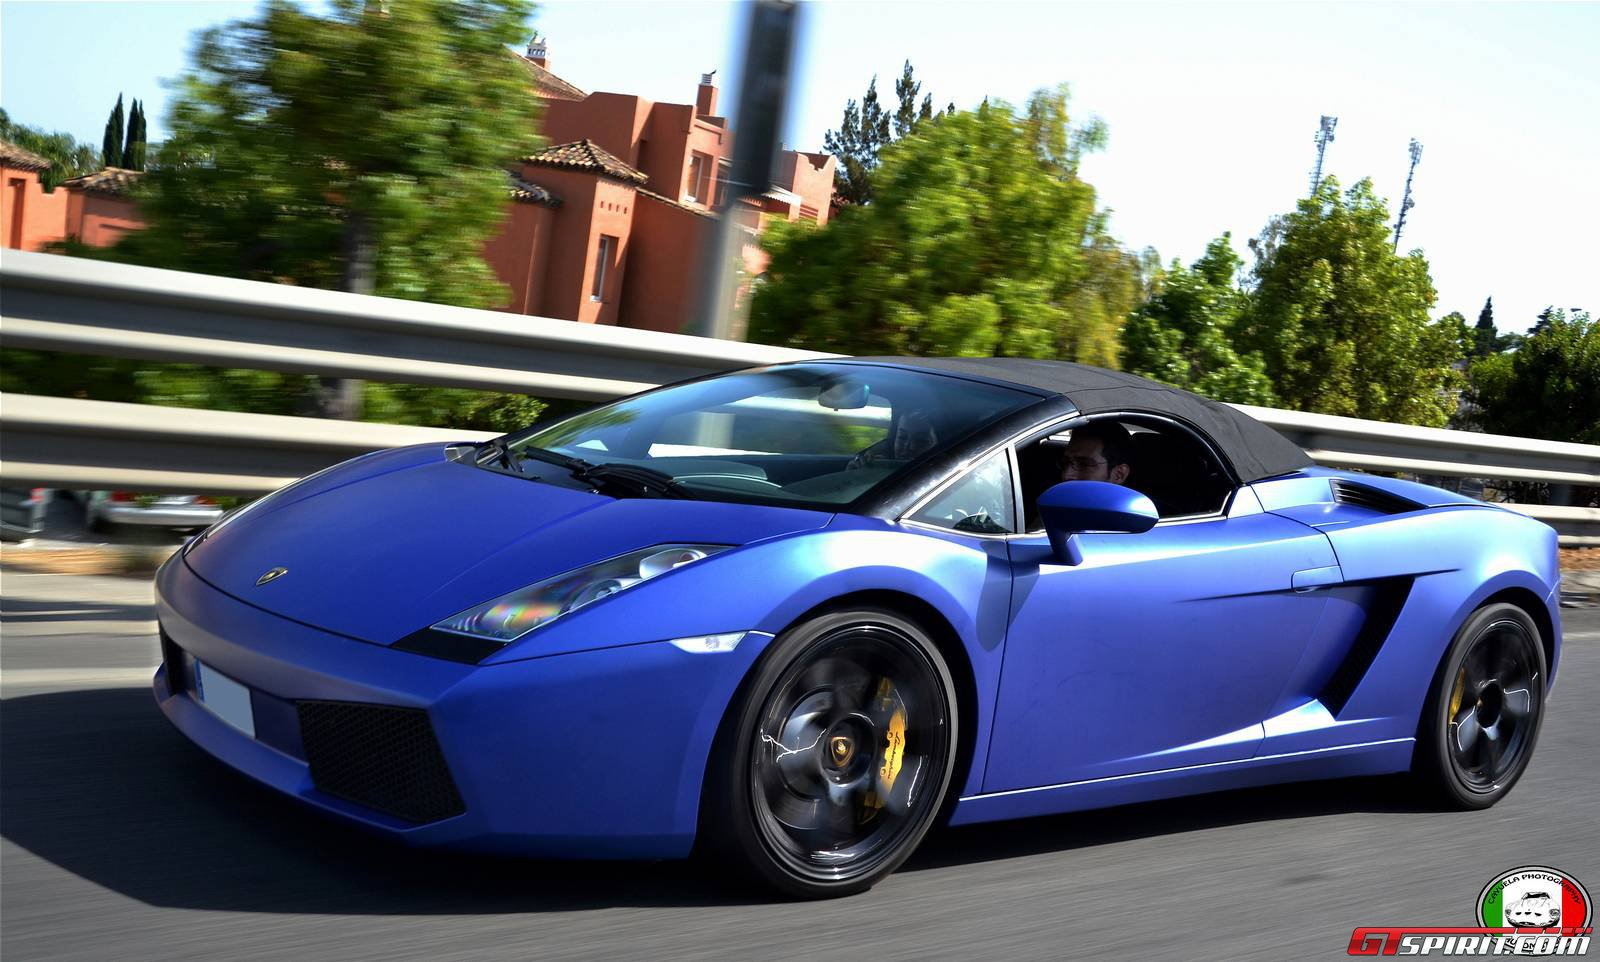 lamborghini gallardo spyder matte black. matte blue lamborghini gallardo spyder by cayuela photography car black p